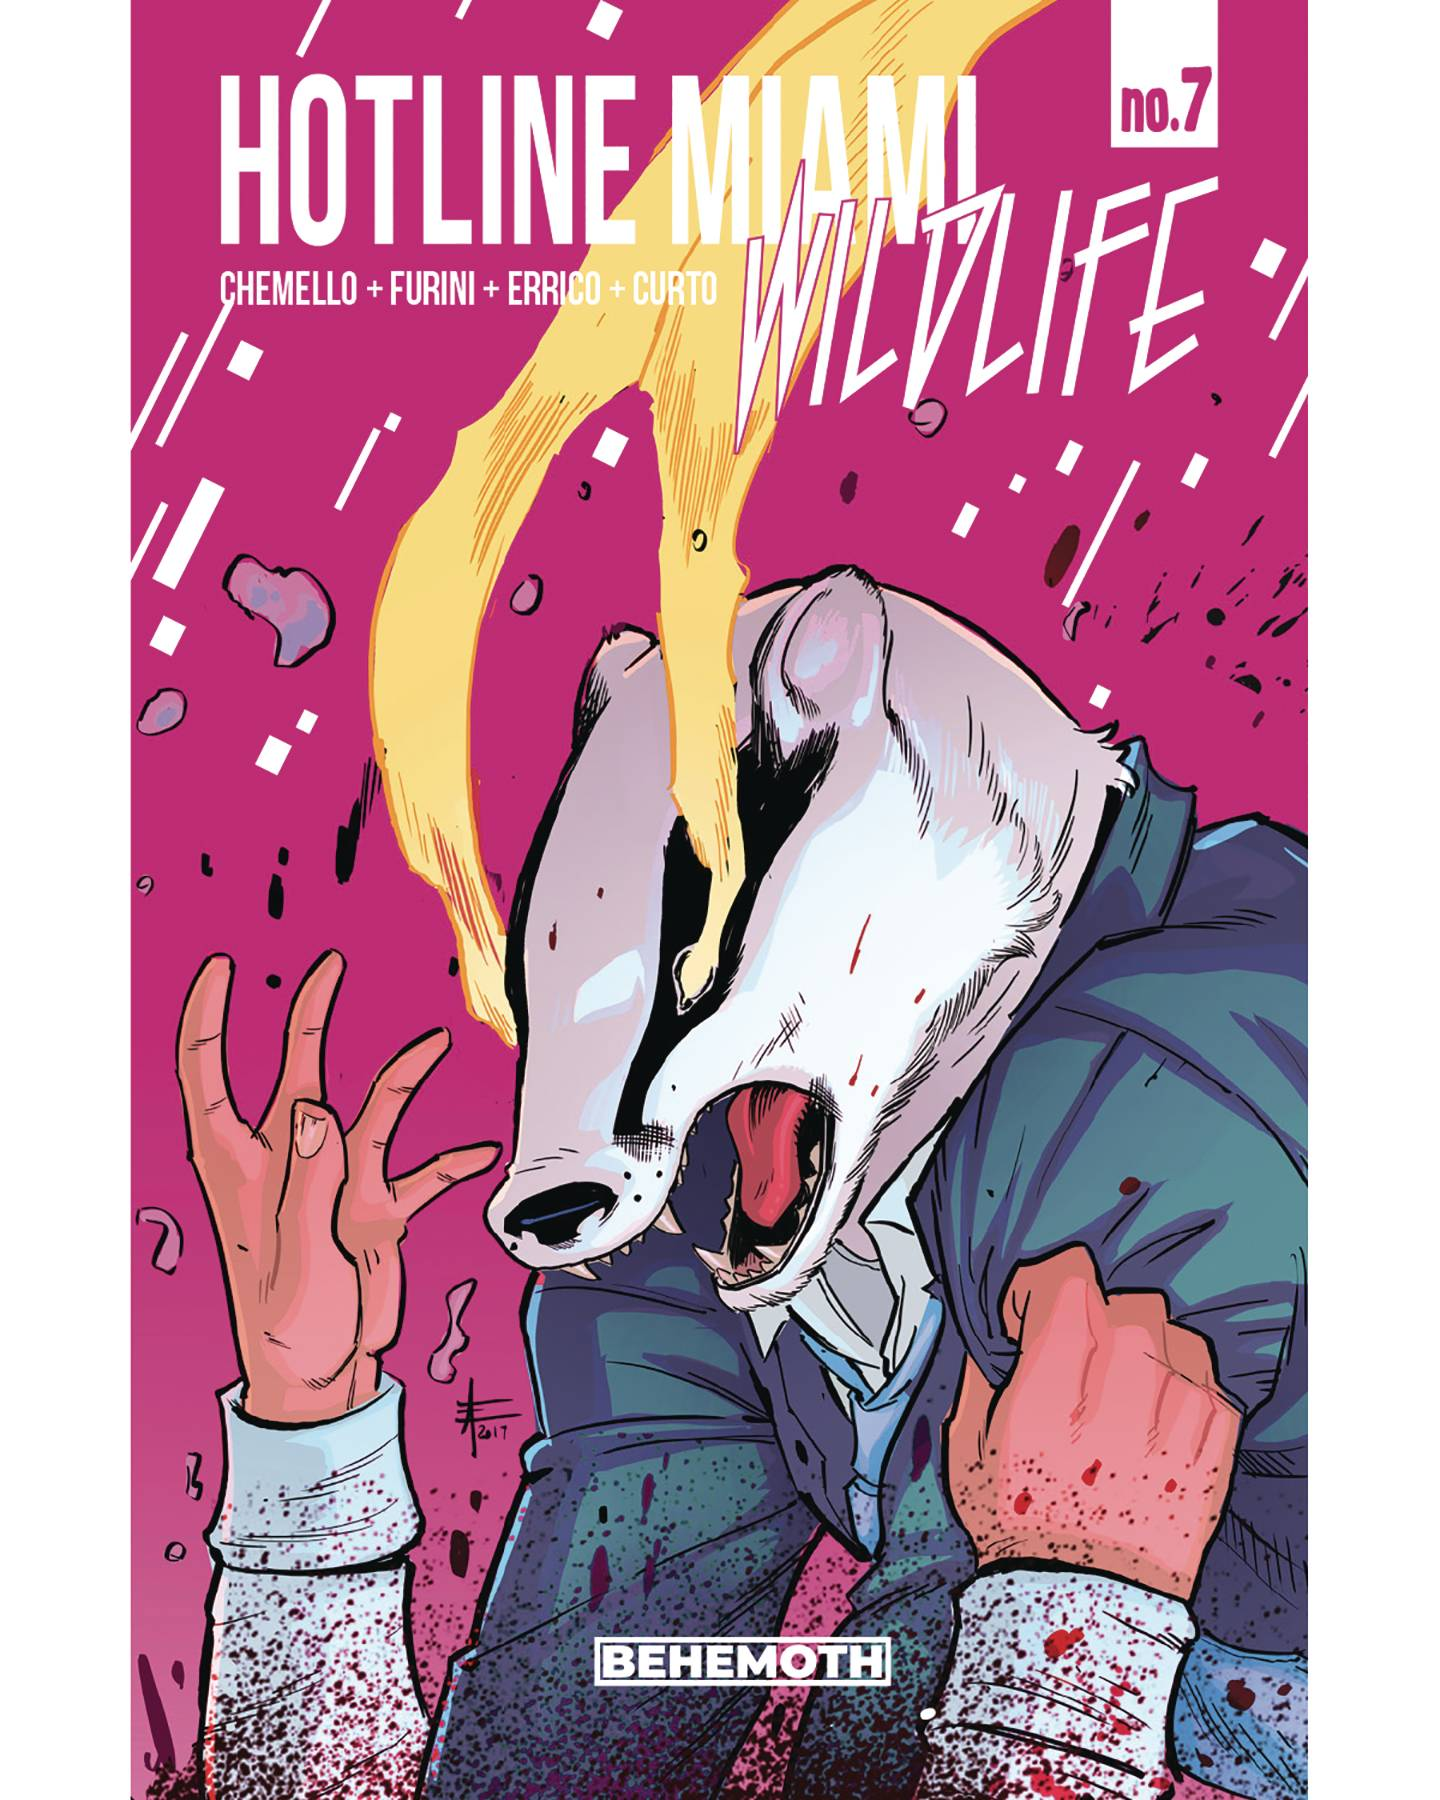 HOTLINE MIAMI WILDLIFE #7 (OF 8) (MR)